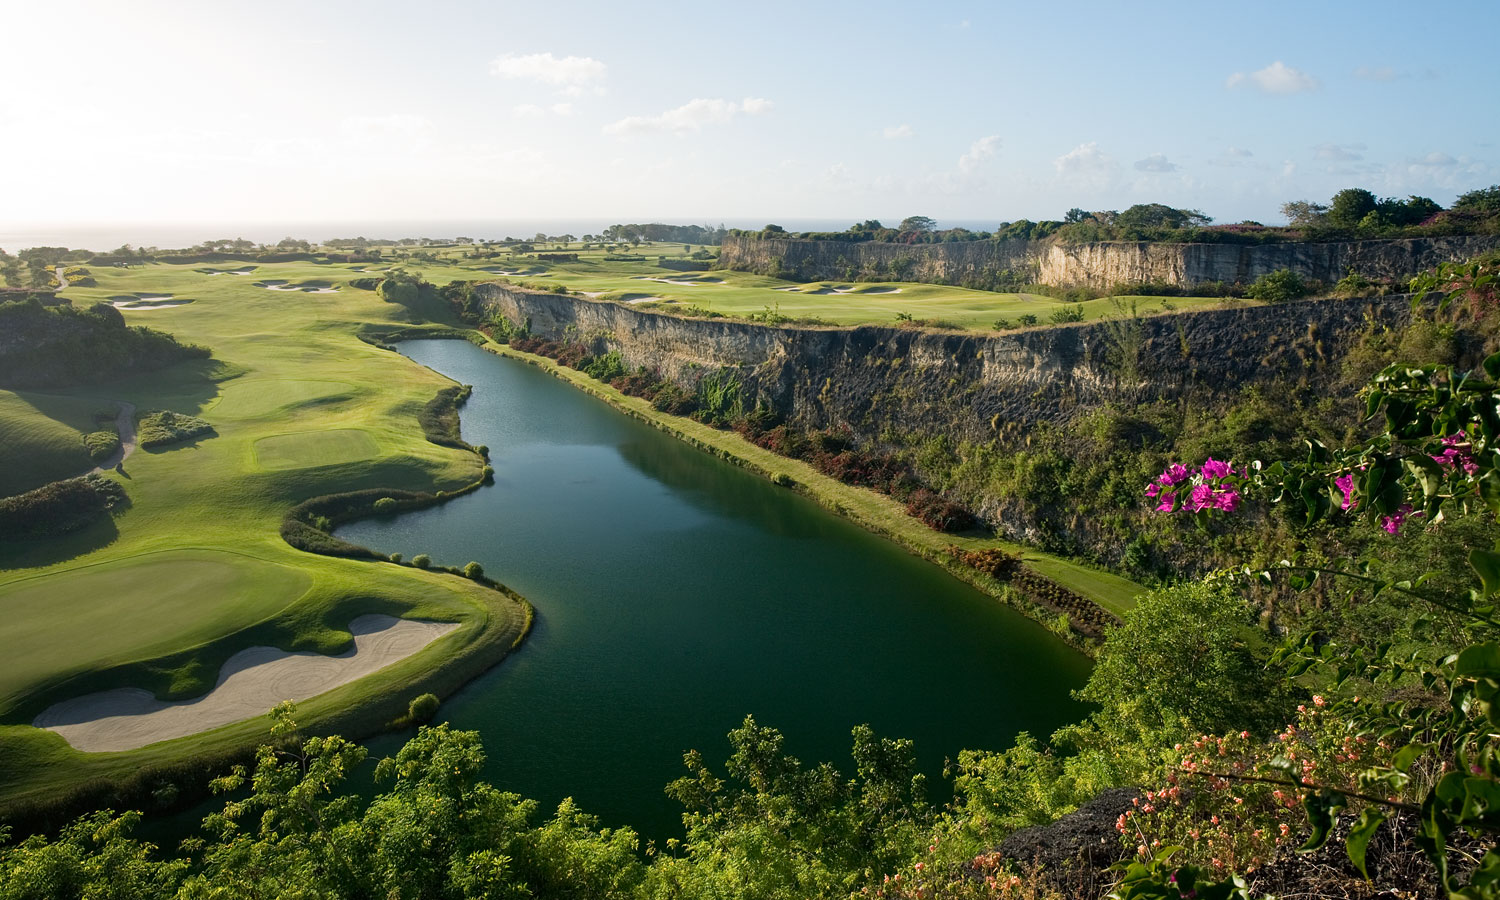 Barbados Golf Course Lake View